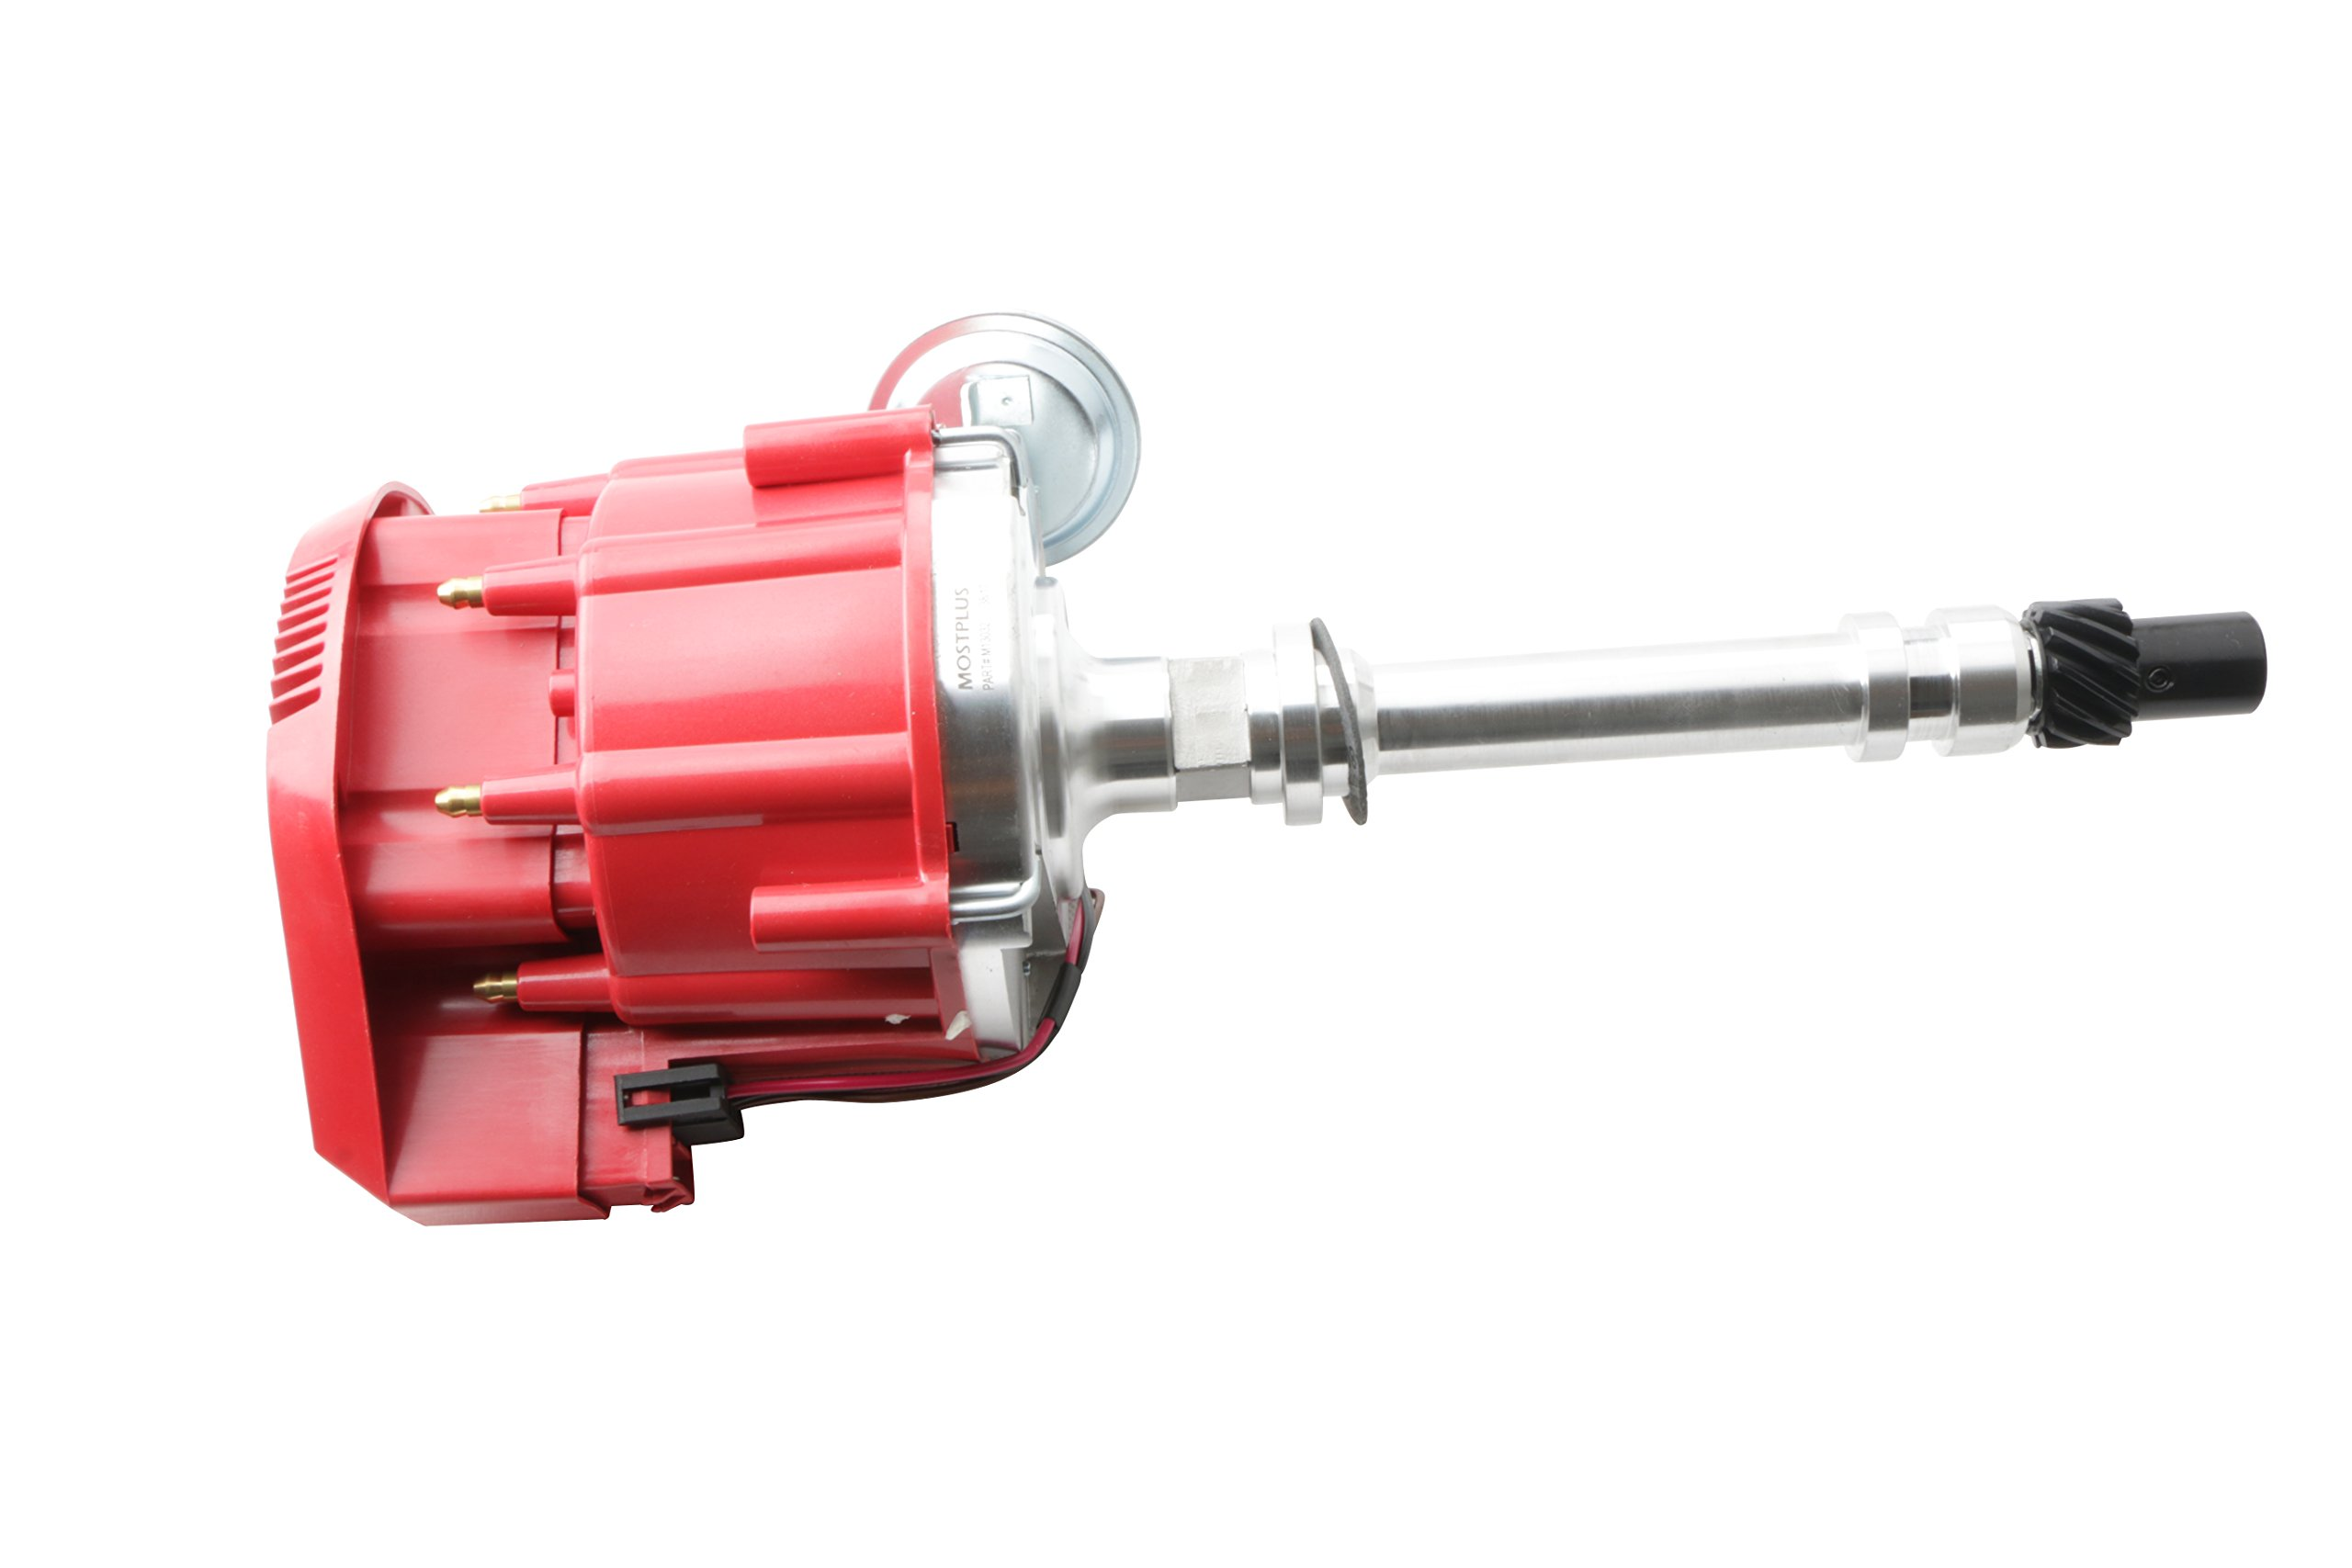 Mostplus New Racing Hei Distributor Red Cap Super Coil For Chevy Sbc 305 350 400 Small Block 1035001 M13032 Distributors Automotive Tibs